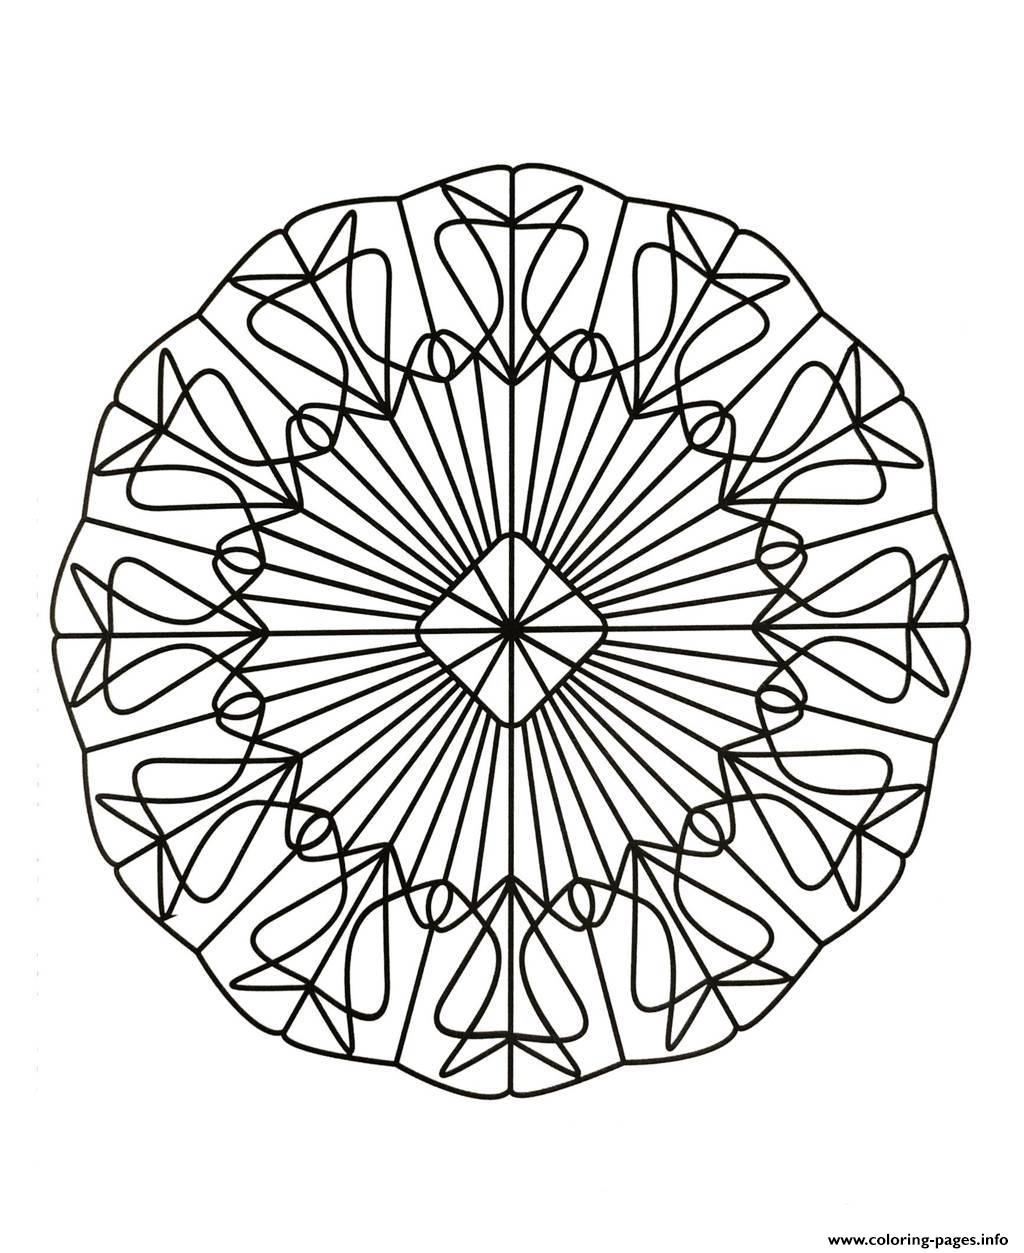 Mandalas To Download For Free 2 Coloring Pages Printable | free coloring pages mandalas